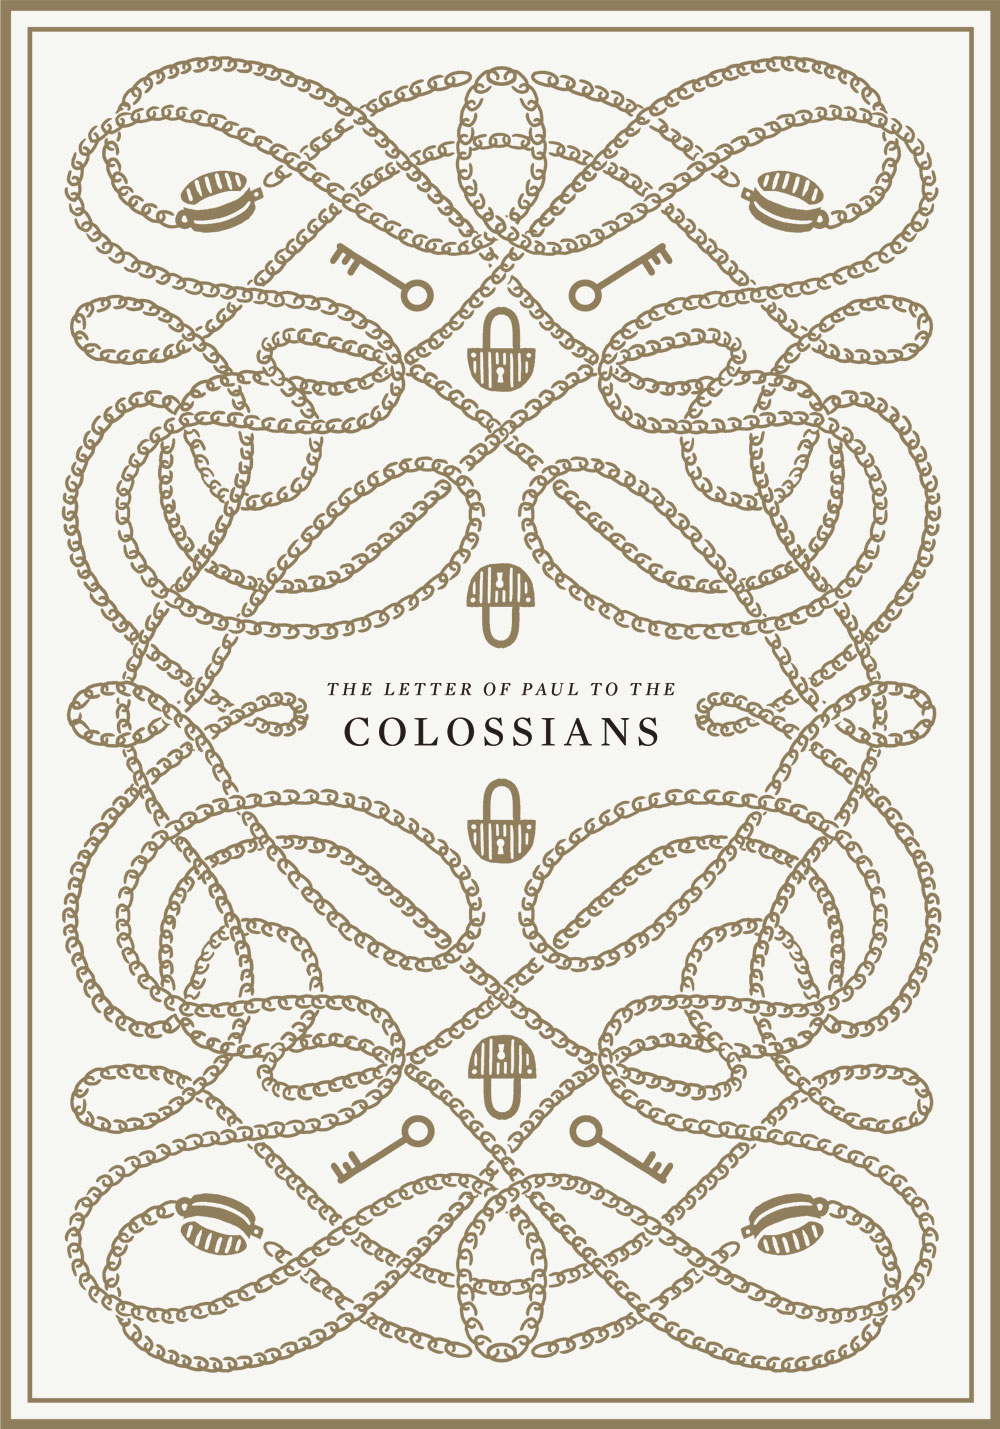 51-Colossians.jpg